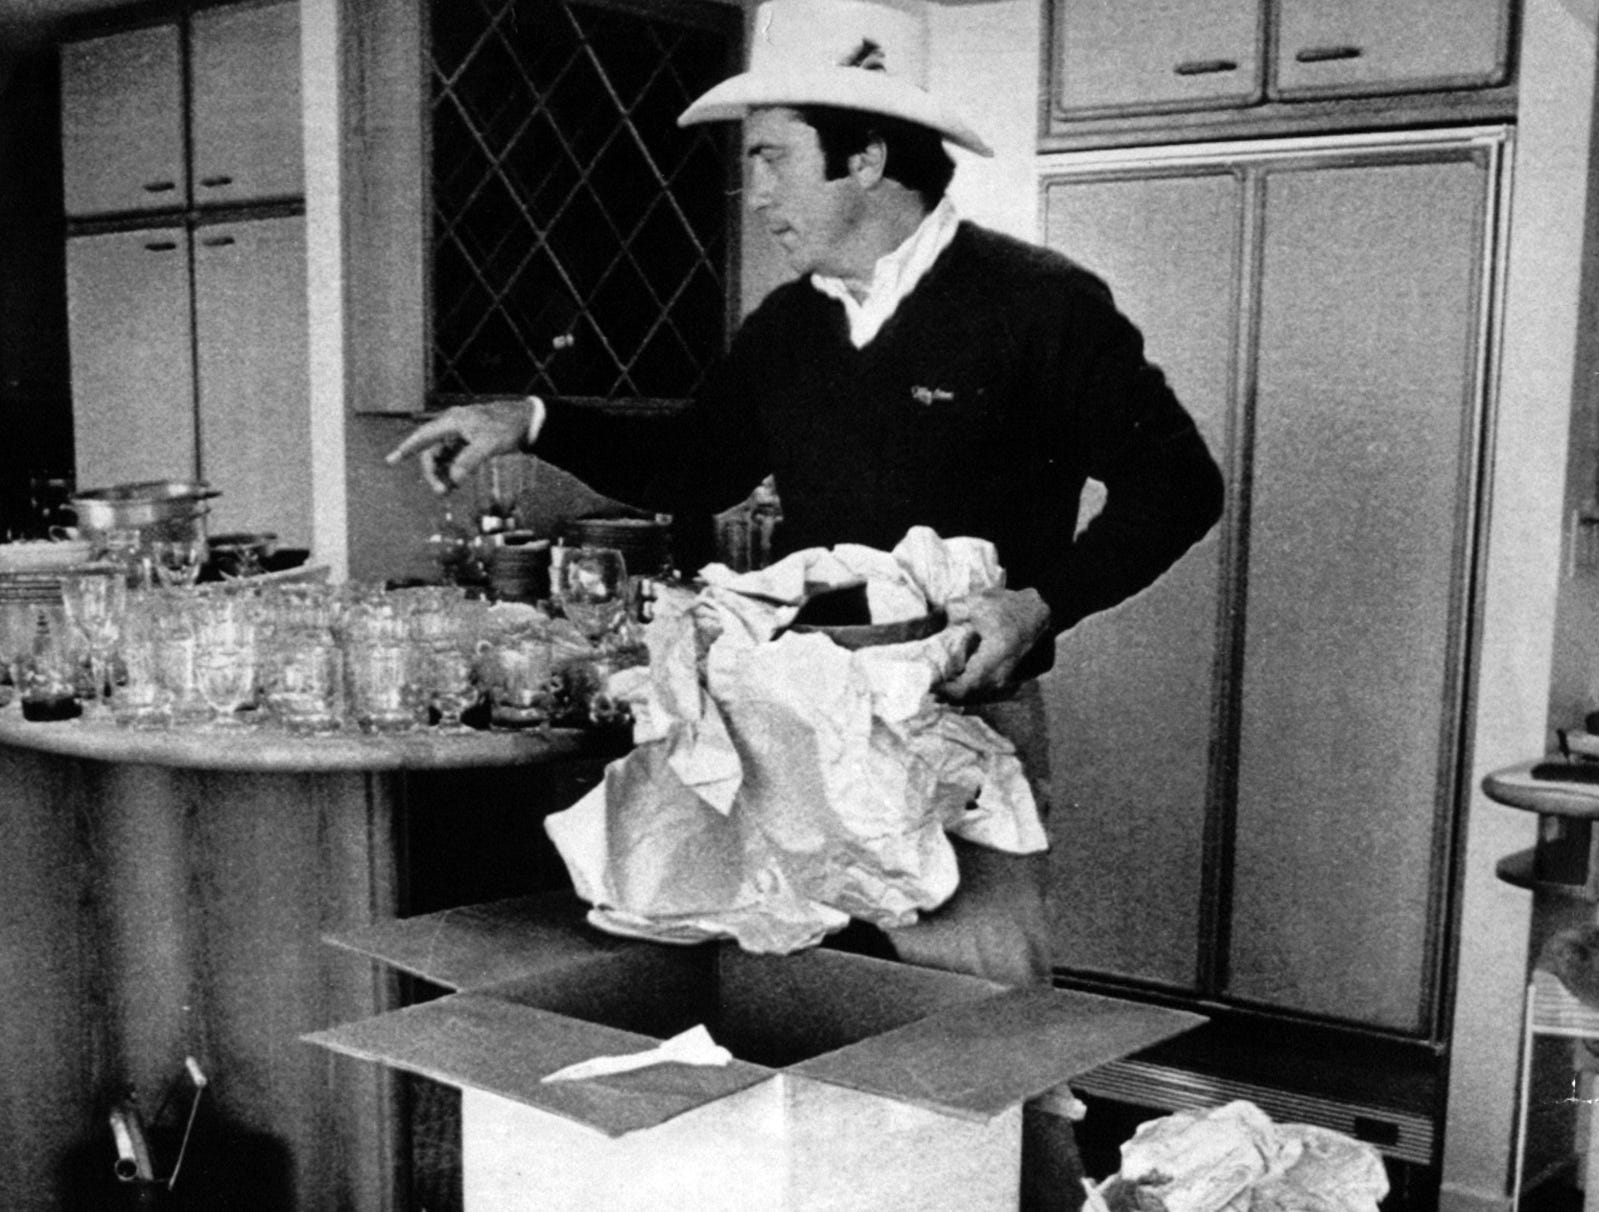 DECEMBER 1, 1982: Cincinnati Reds player Johnny Bench unpacks inside his new home in Cincinnati Tuesday. The former National League Most-Valuable-Player had his home destroyed in a fire last January in a blaze that was estimated to have caused $650,000 damage. The Enquirer/Mark Treitel scanned August 8, 2013